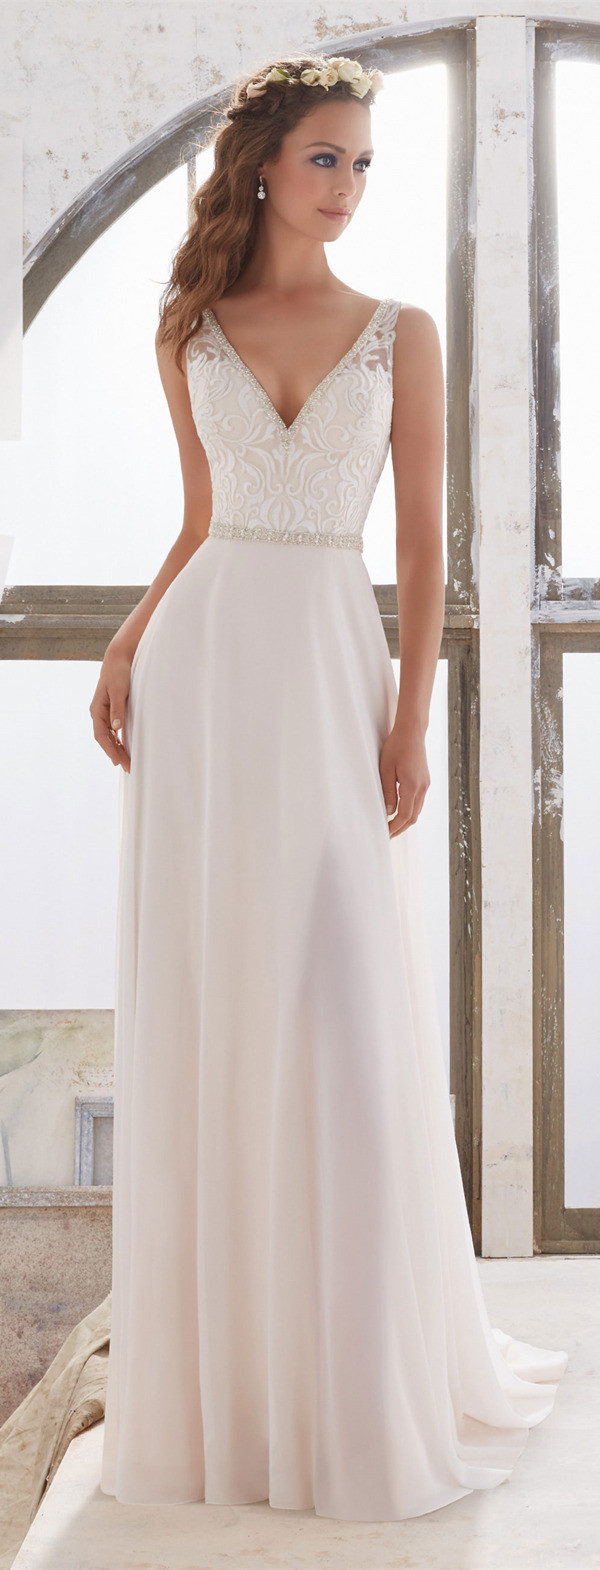 Simple elegant wedding dresses choice image wedding for Simple elegant short wedding dresses